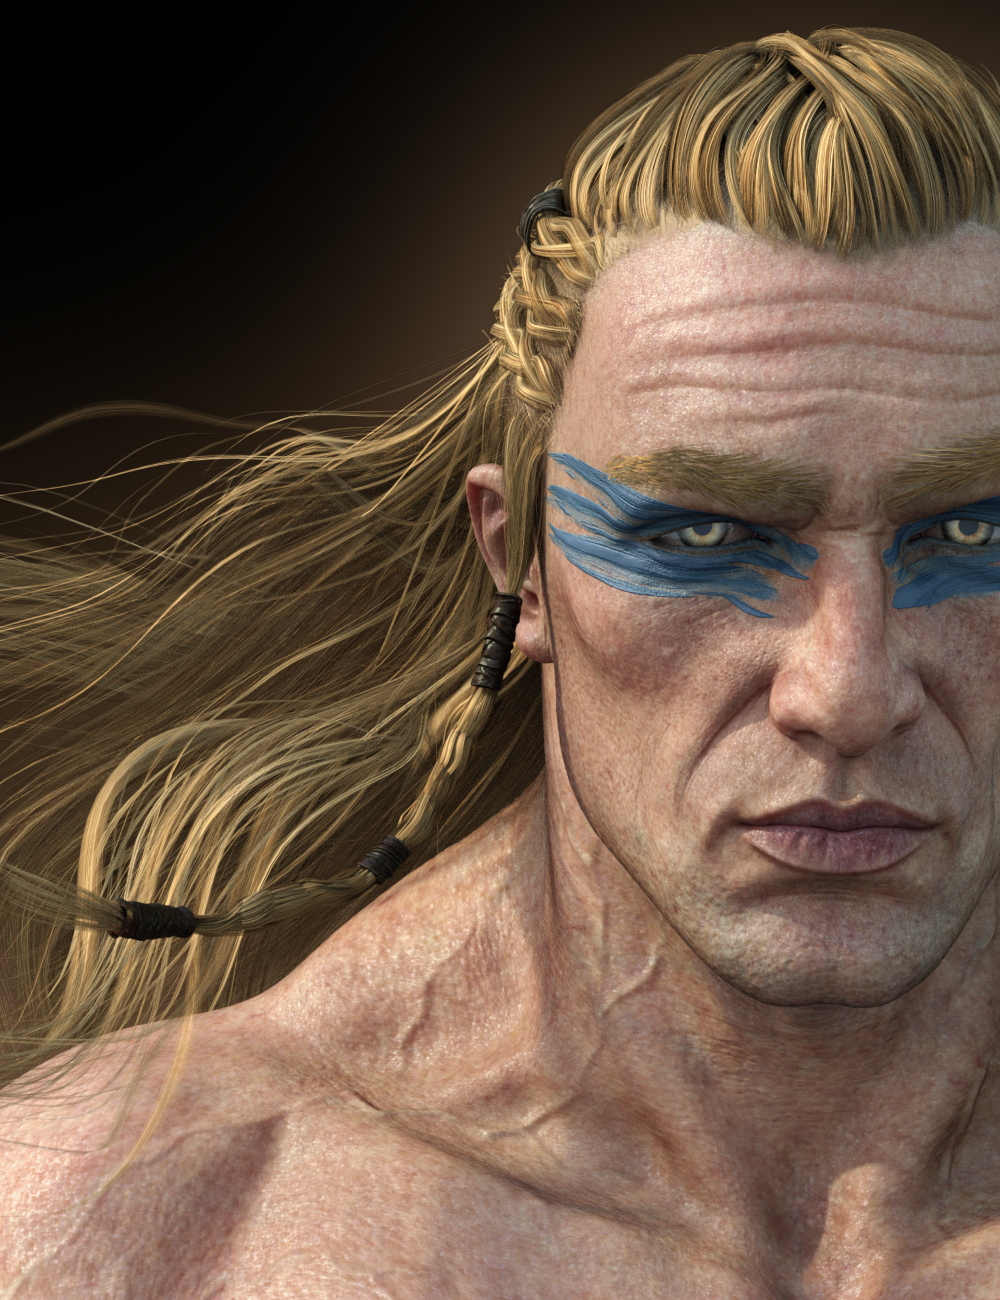 Dragonsbane Barbarian Character HD for Genesis 3 Male by: Luthbel, 3D Models by Daz 3D